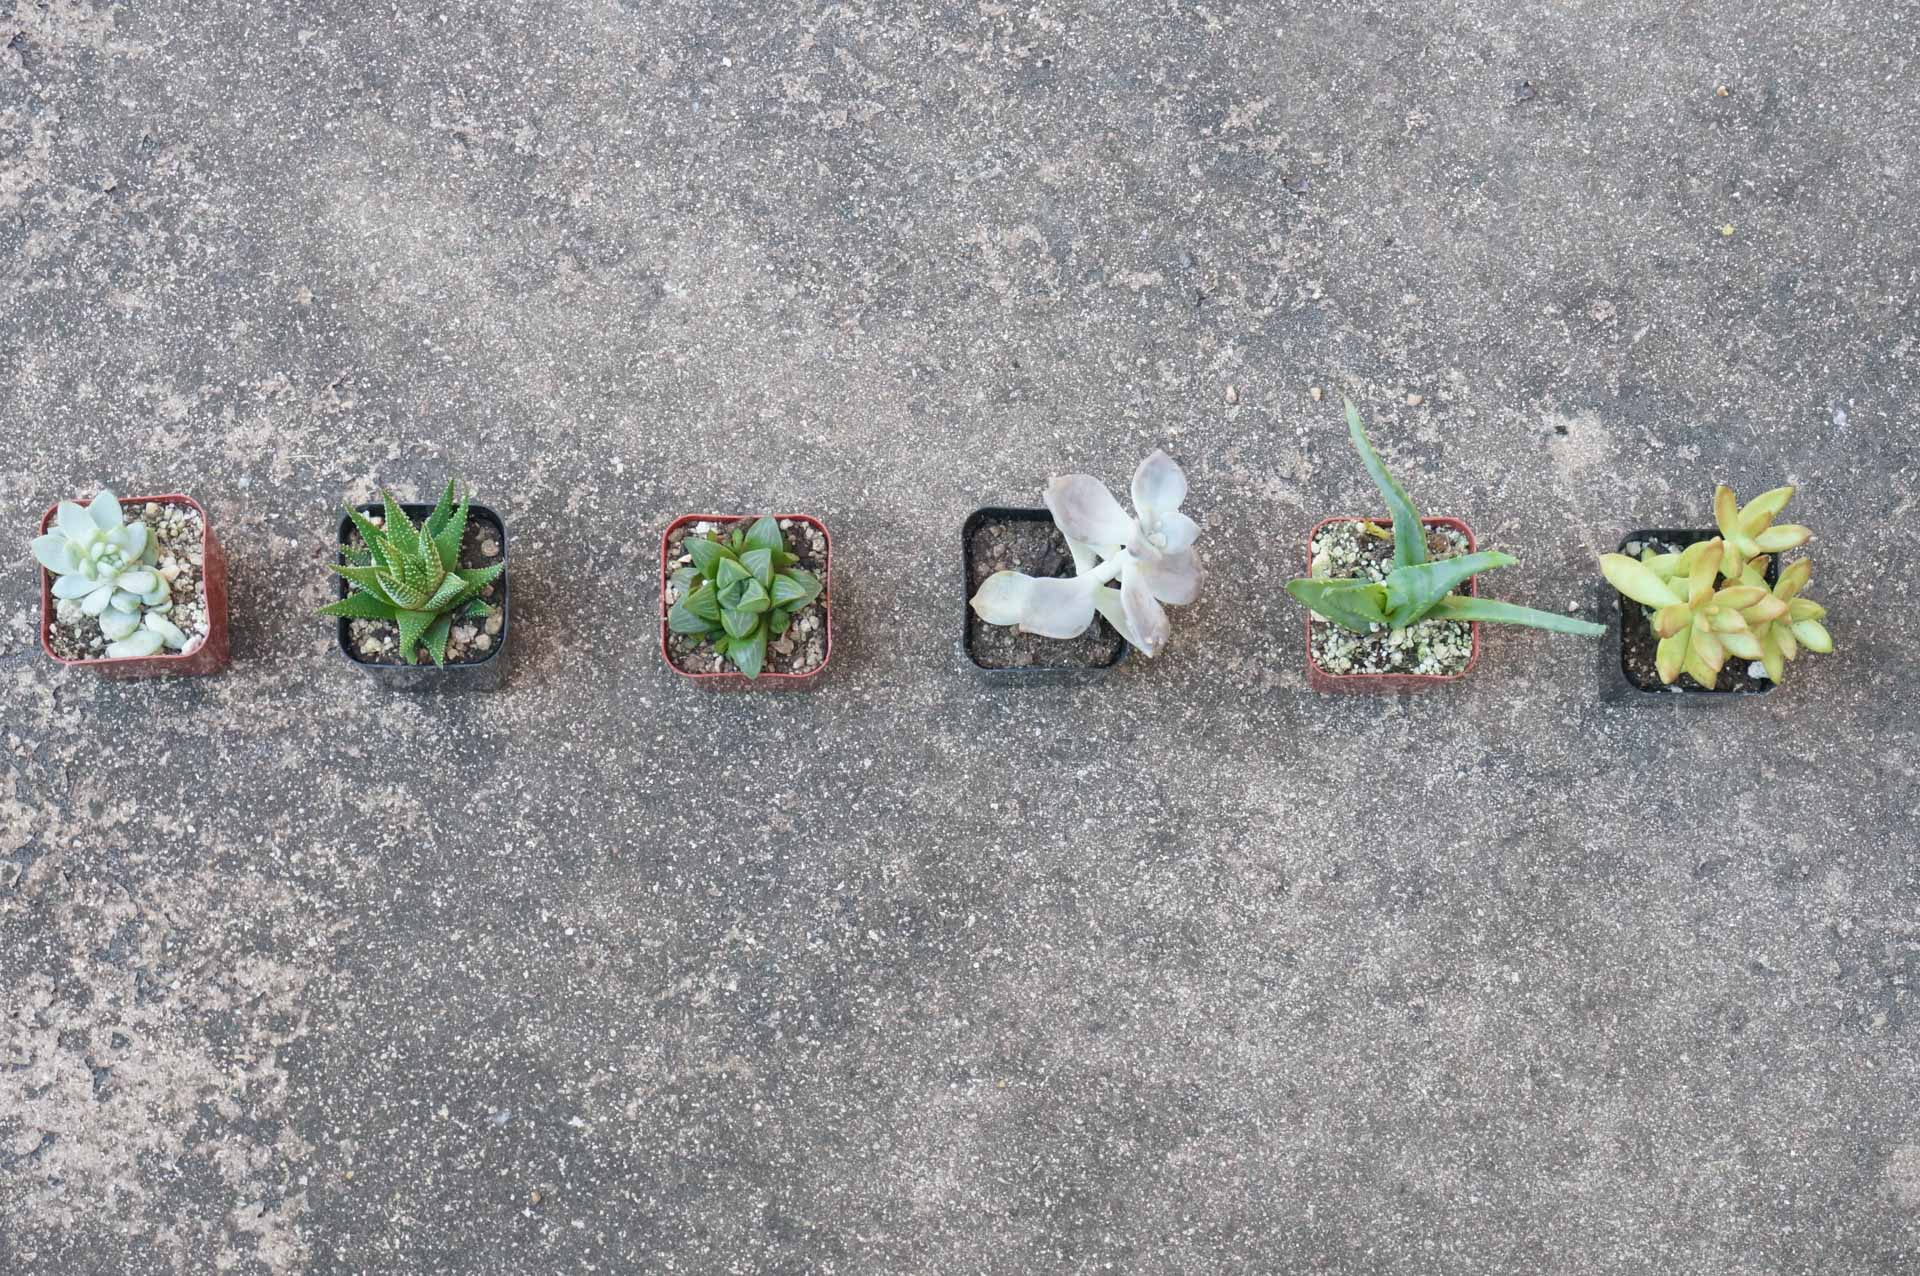 1560782870 136 tips for planting a succulent garden - Tips for Planting a Succulent Garden